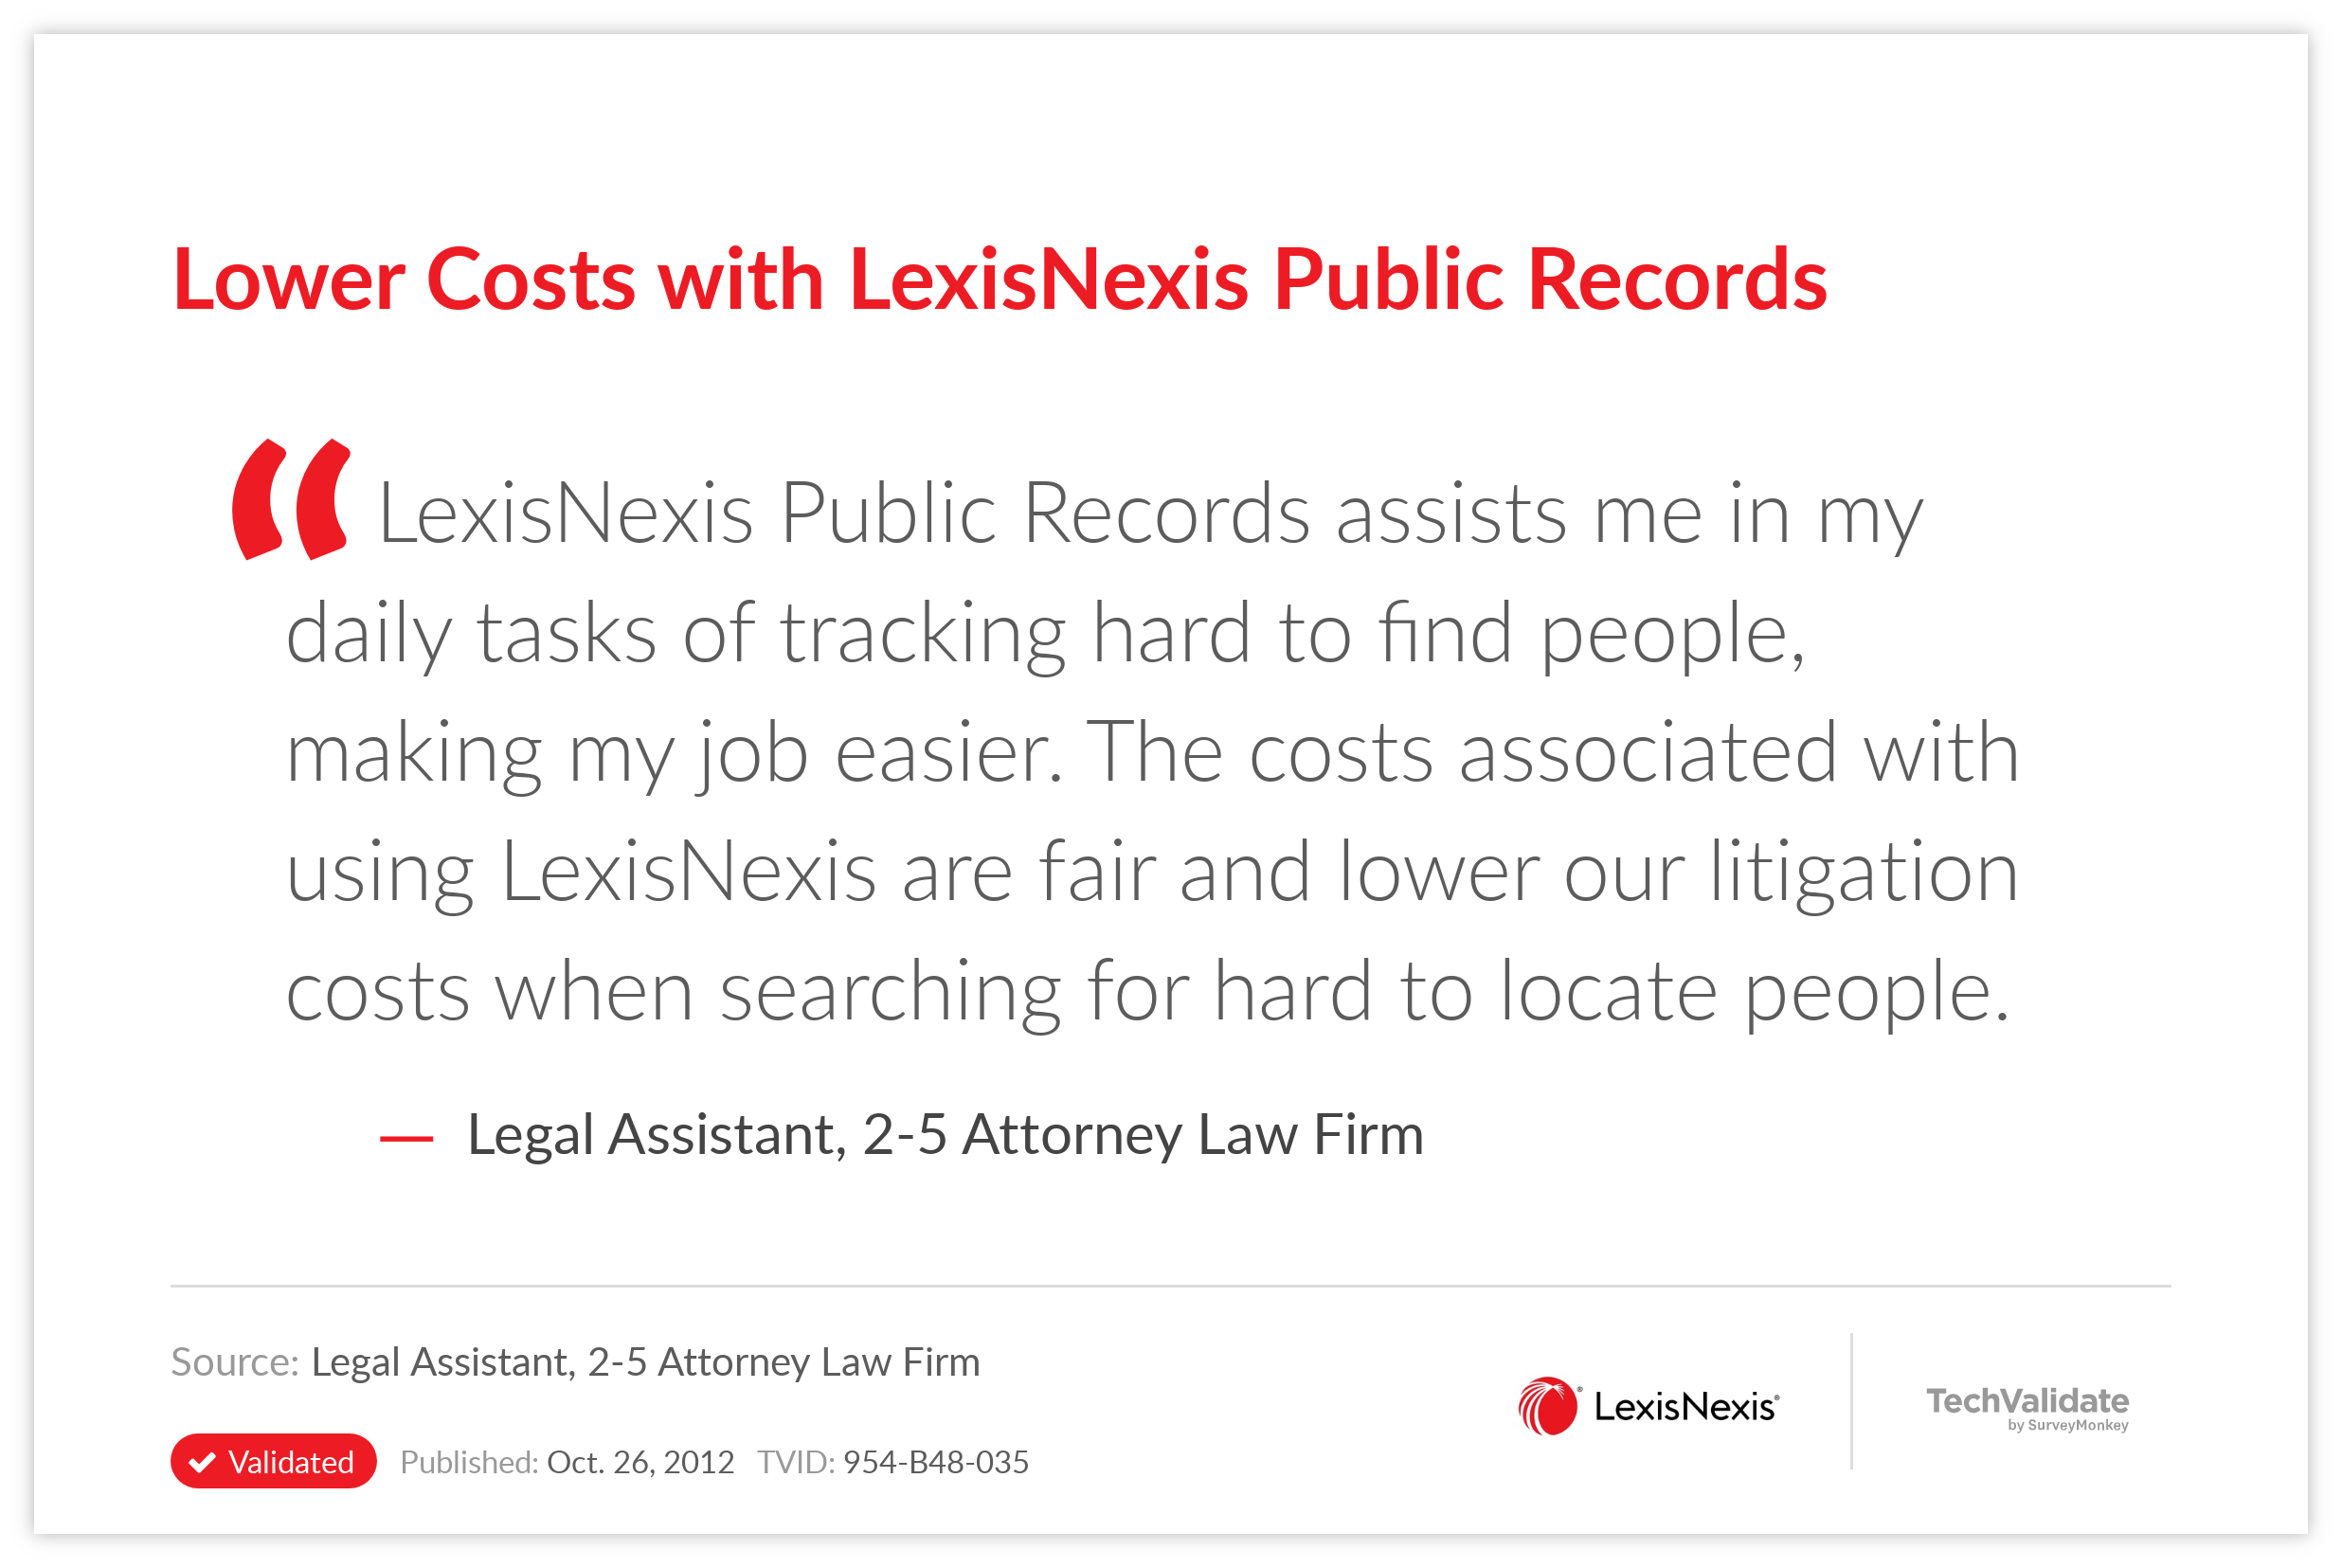 Lower Costs with LexisNexis Public Records